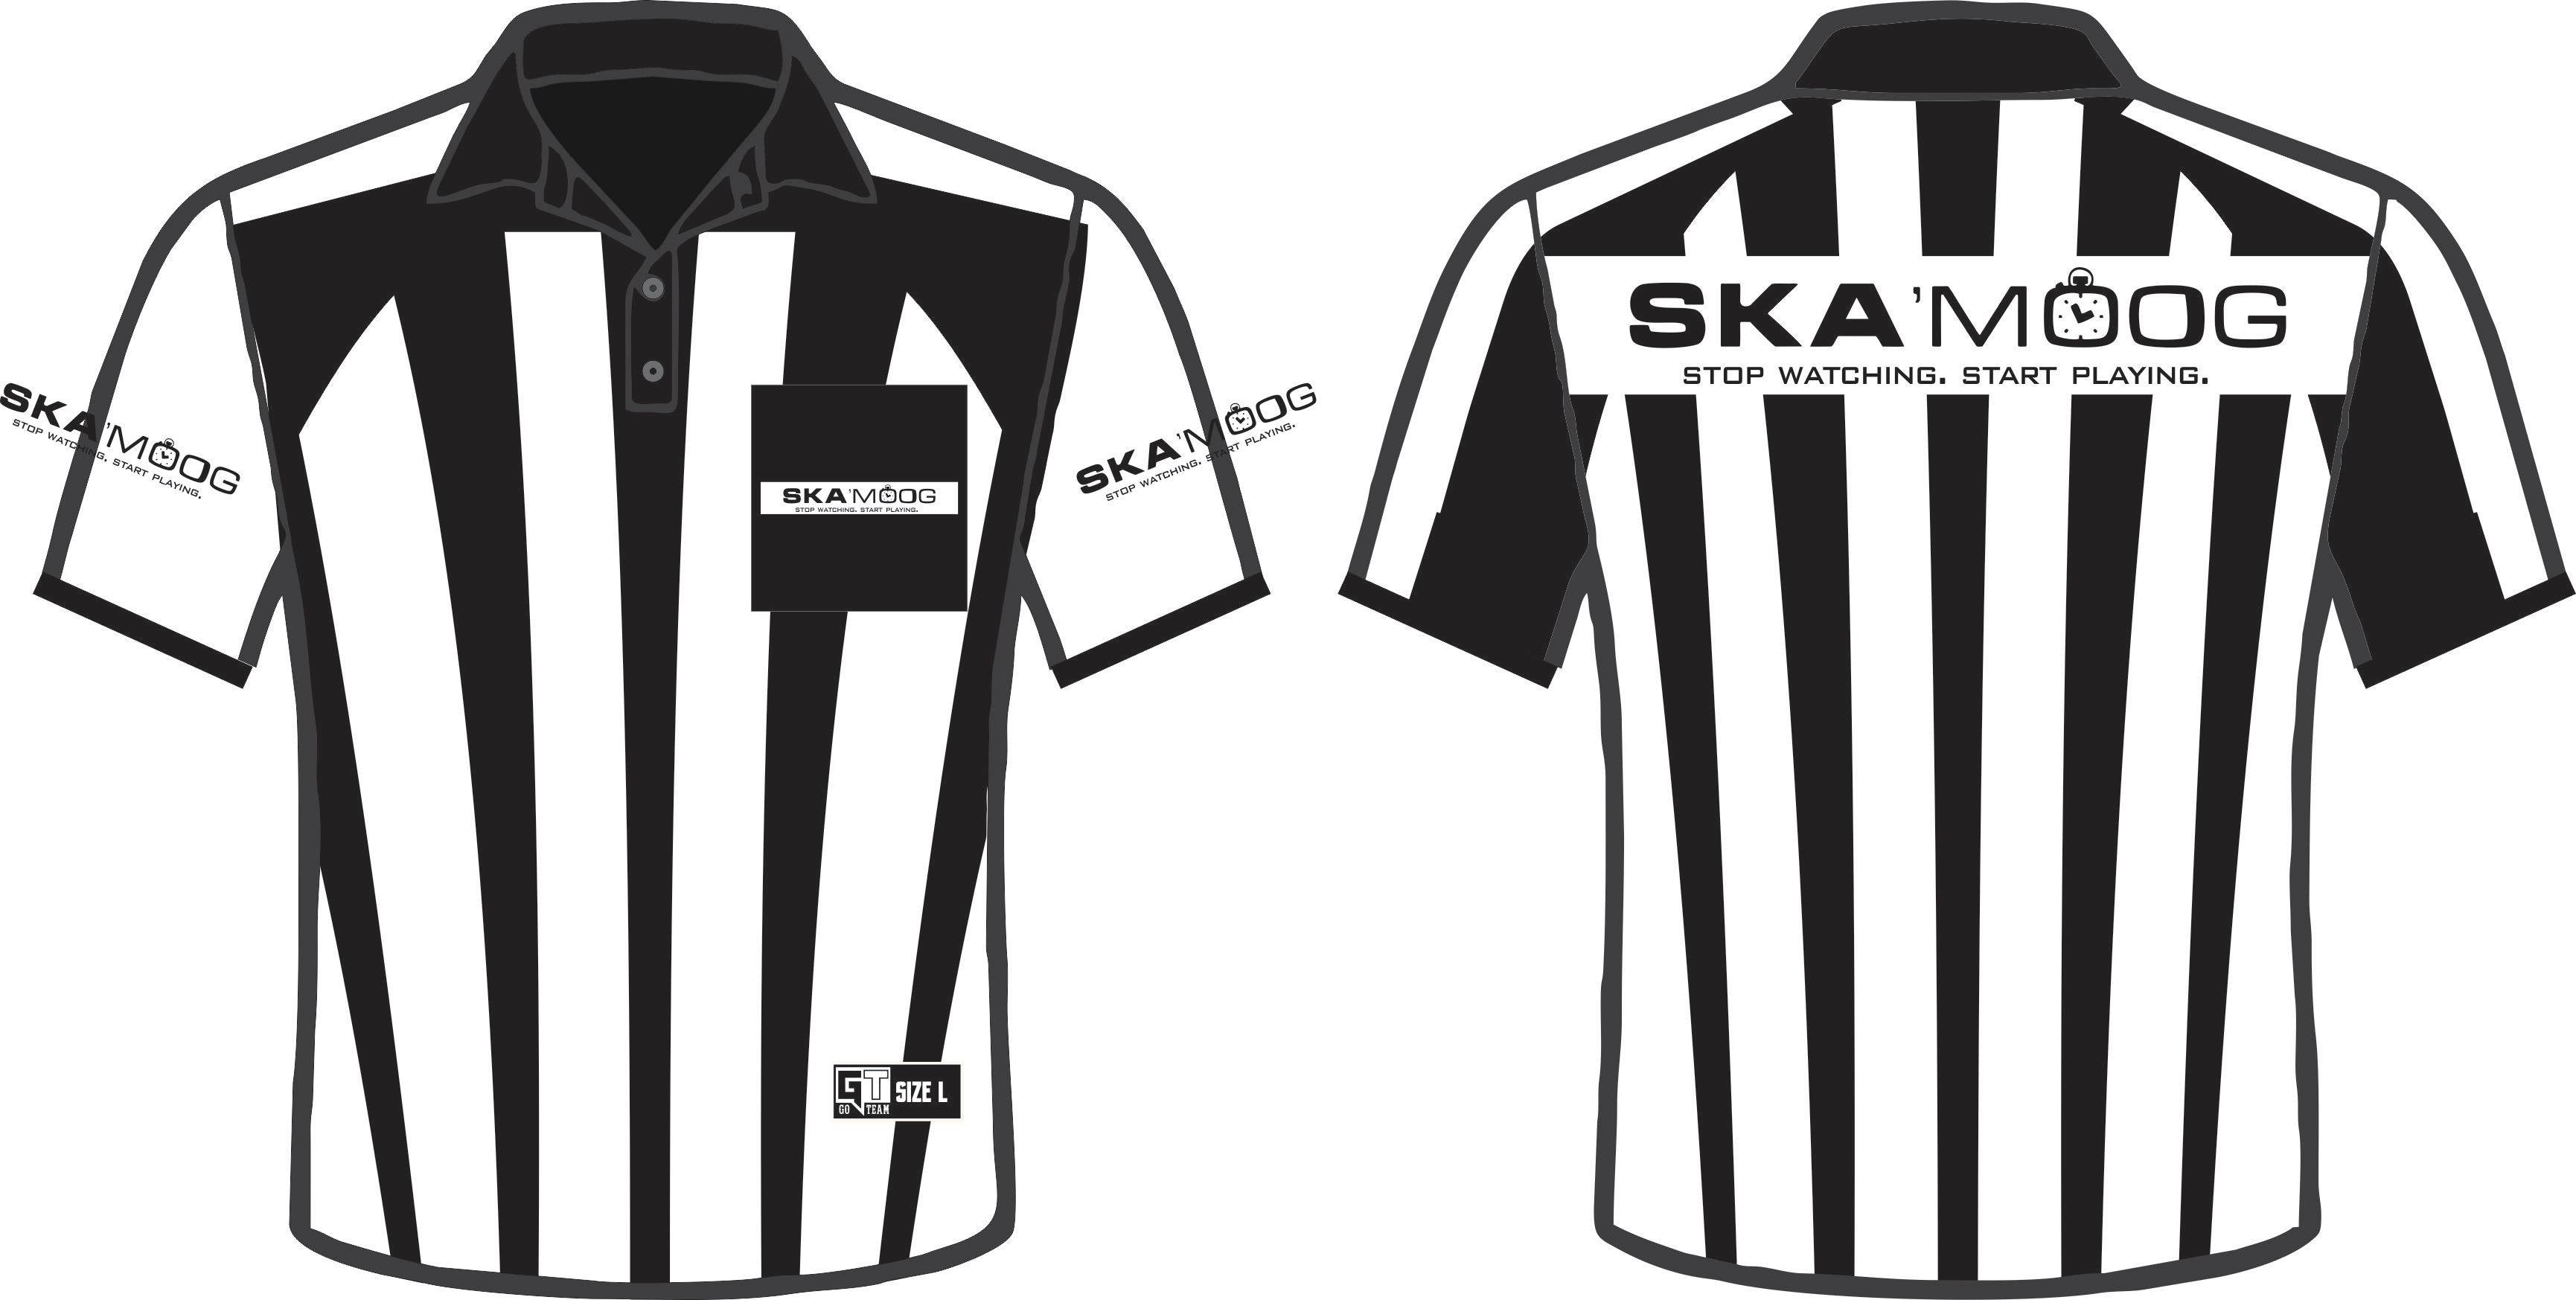 Skamoog Referee Polo